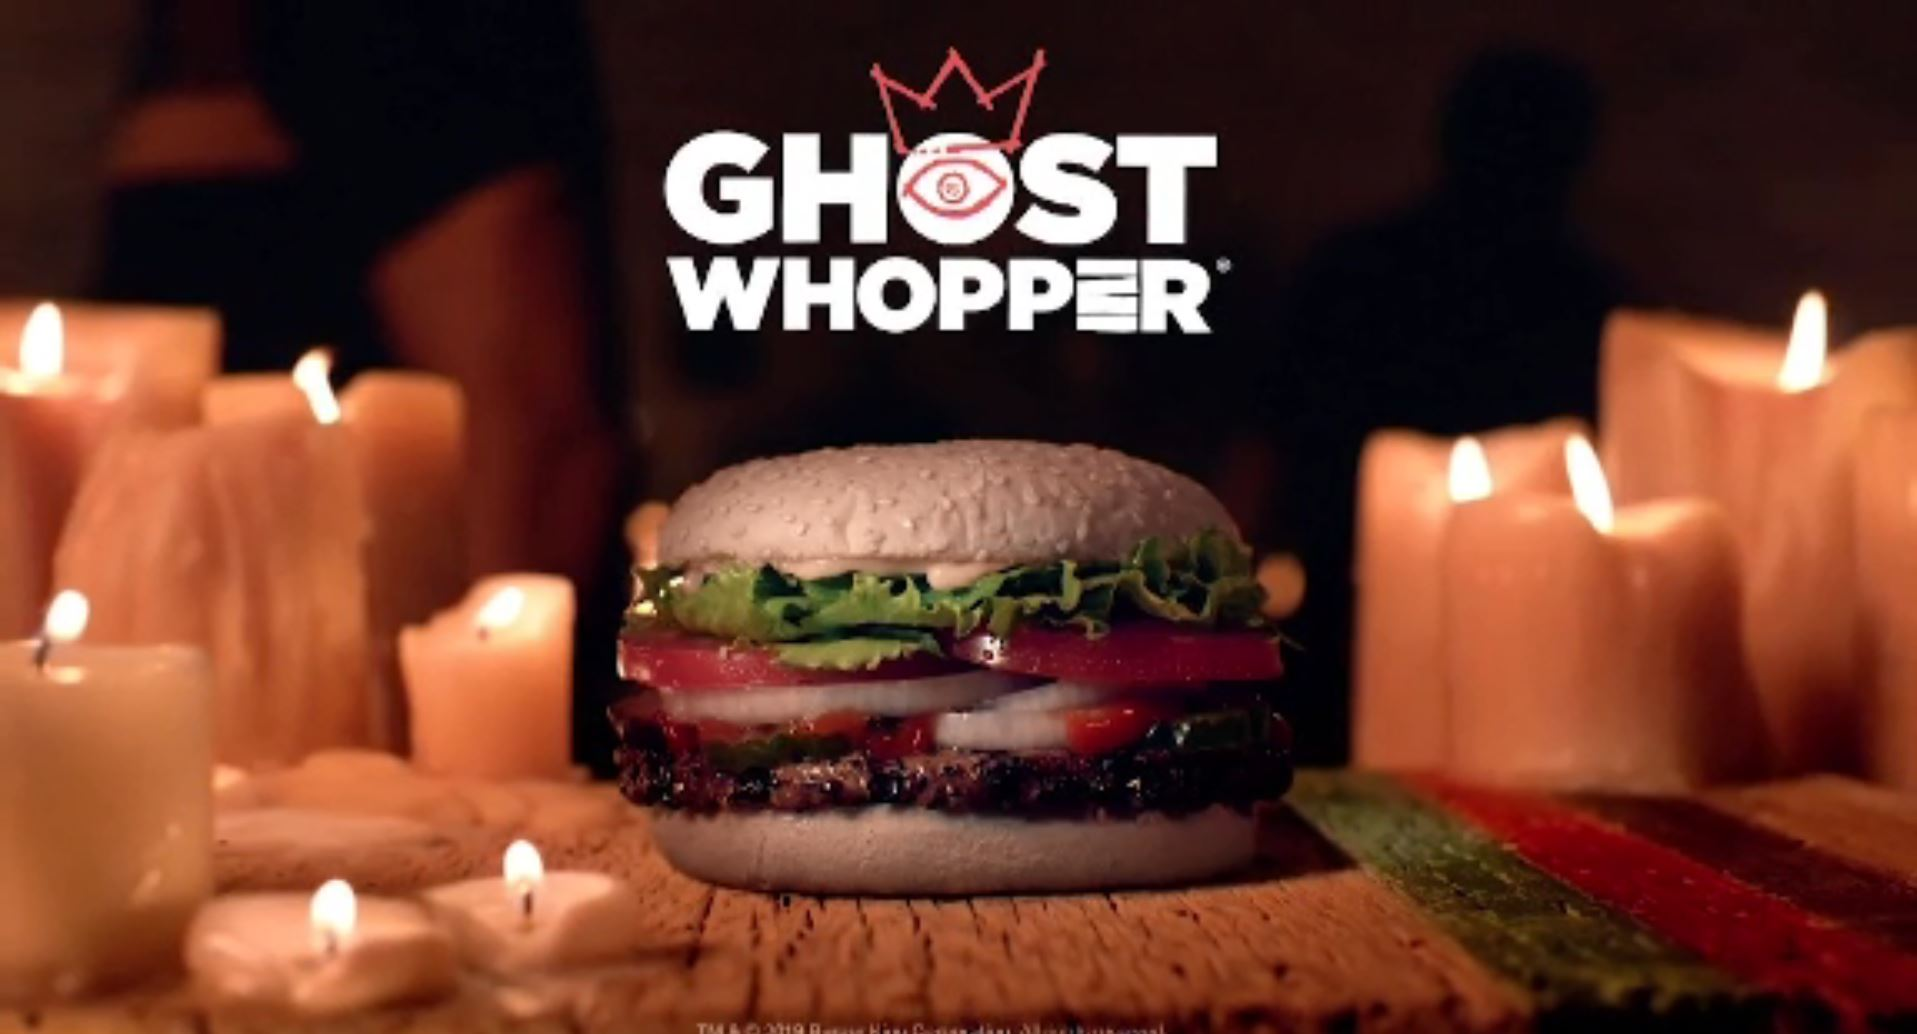 Burger King selling 'Ghost Whopper' for Halloween | WFLA